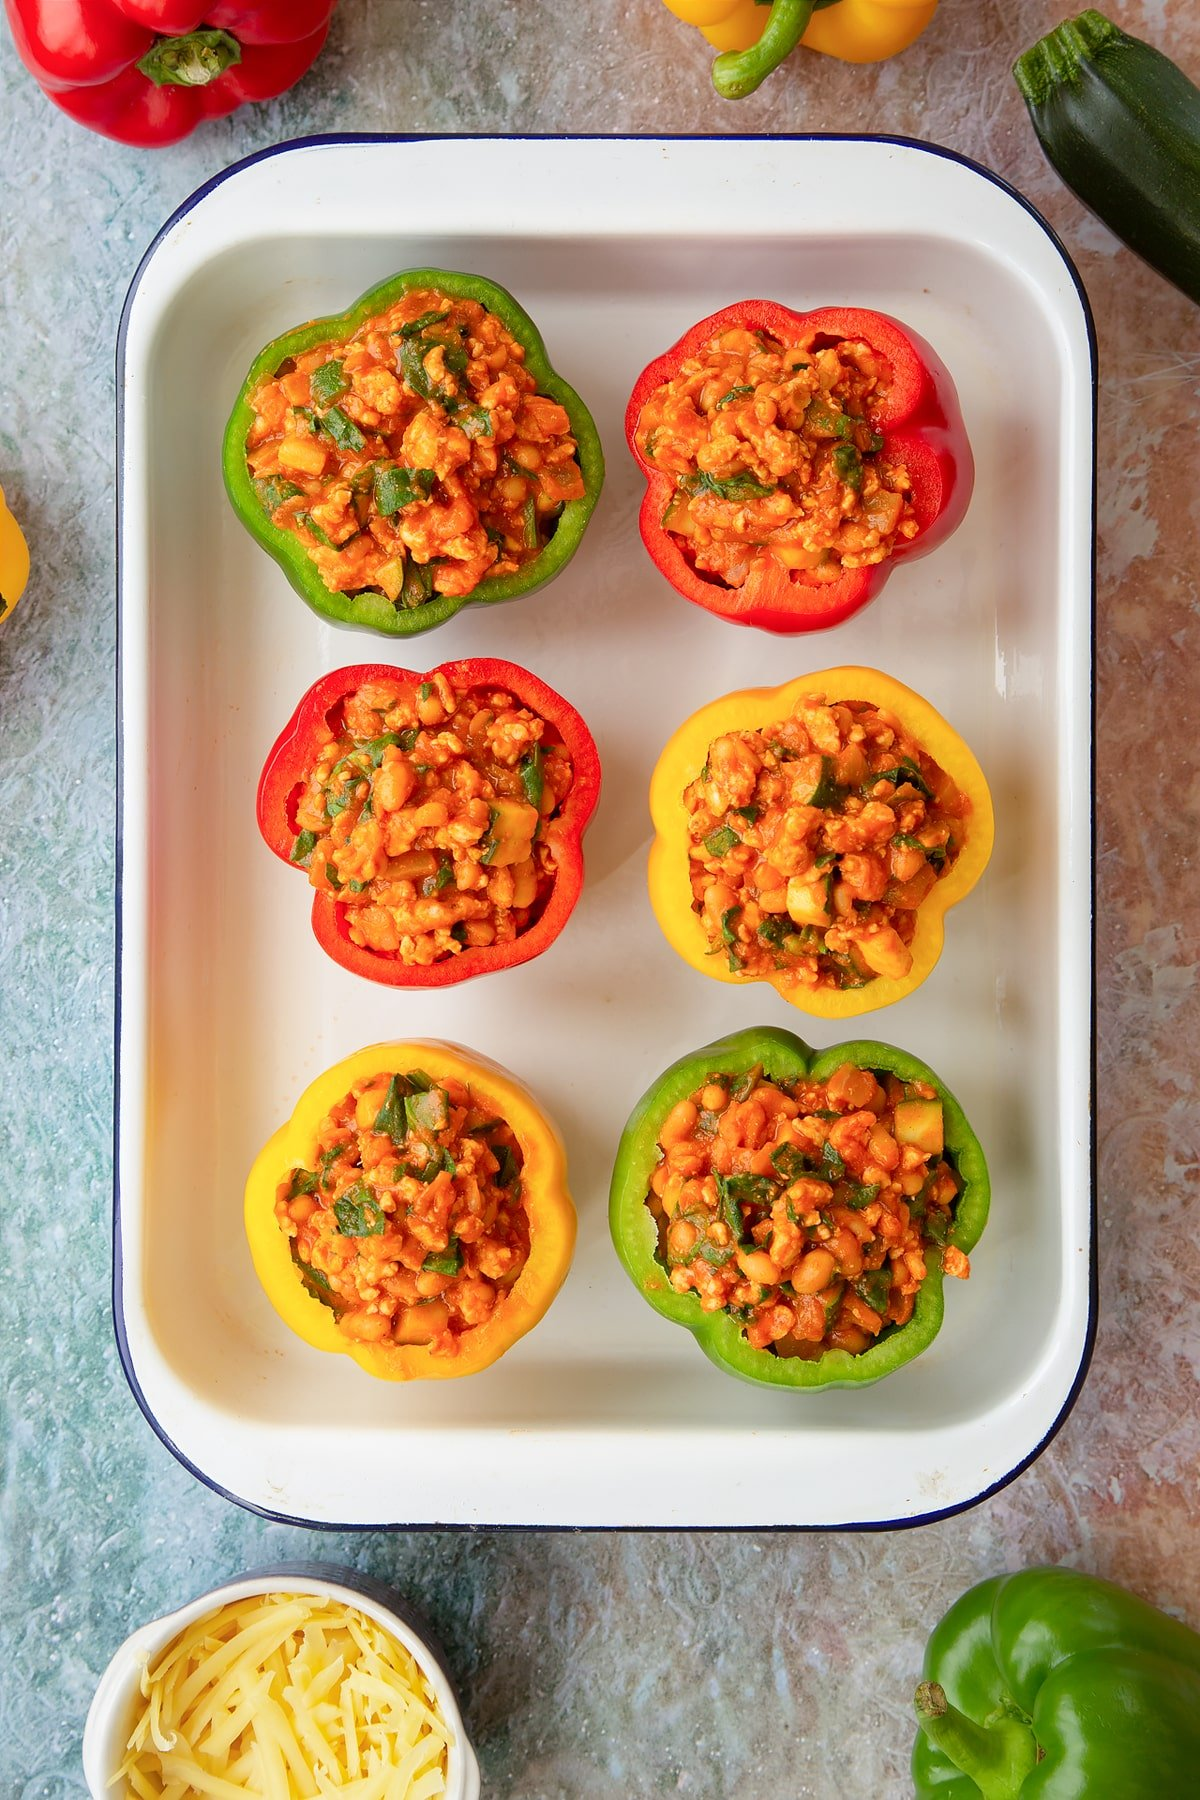 Six red, green and yellow peppers in a white roasting tray. The peppers are filled with the bean and turkey mix. Ingredients to make baked bean stuffed peppers surround the tray.